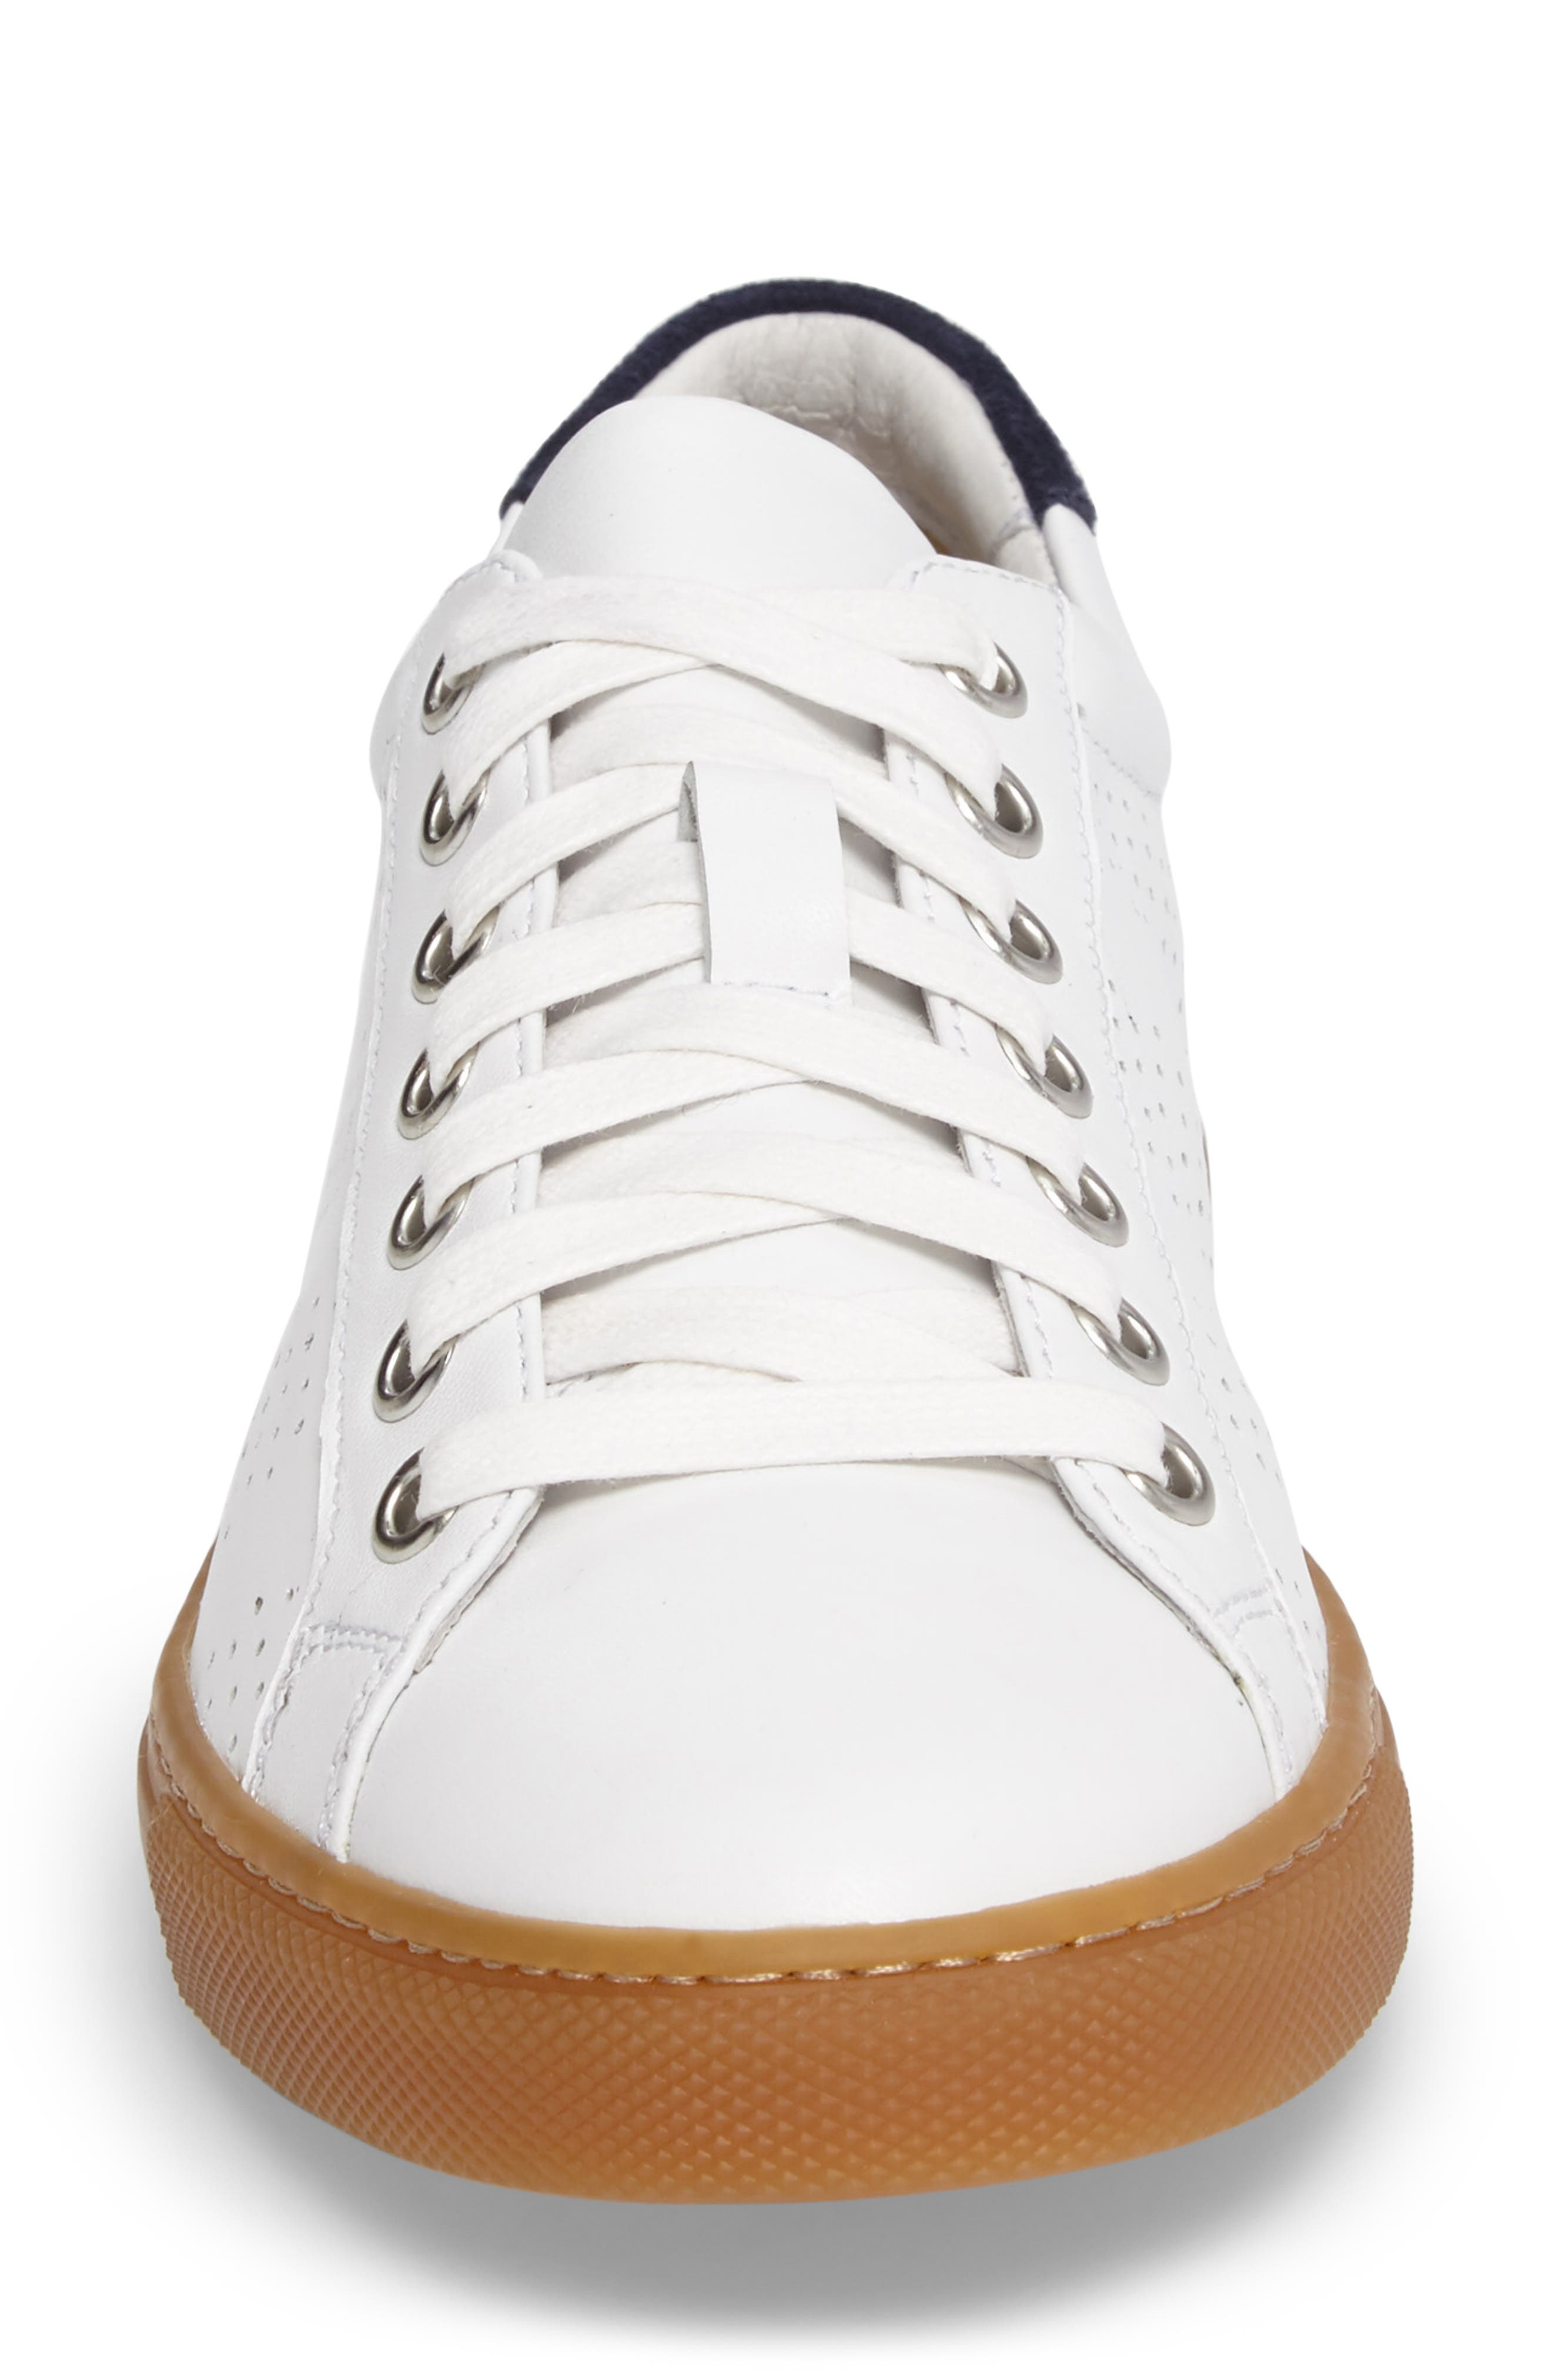 Alternate Image 4  - Treasure & Bond Merrick Perforated Sneaker (Women)